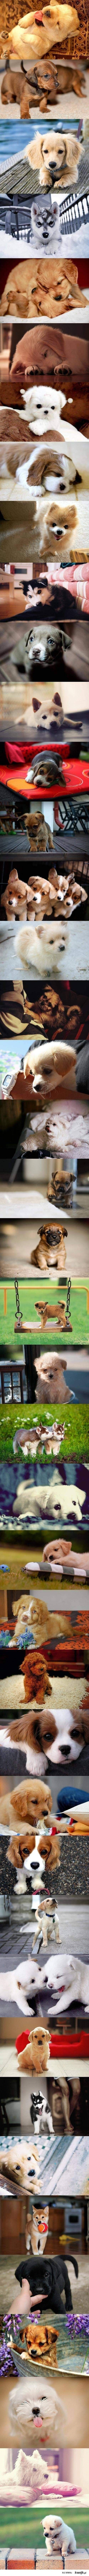 The most adorable puppies ever!